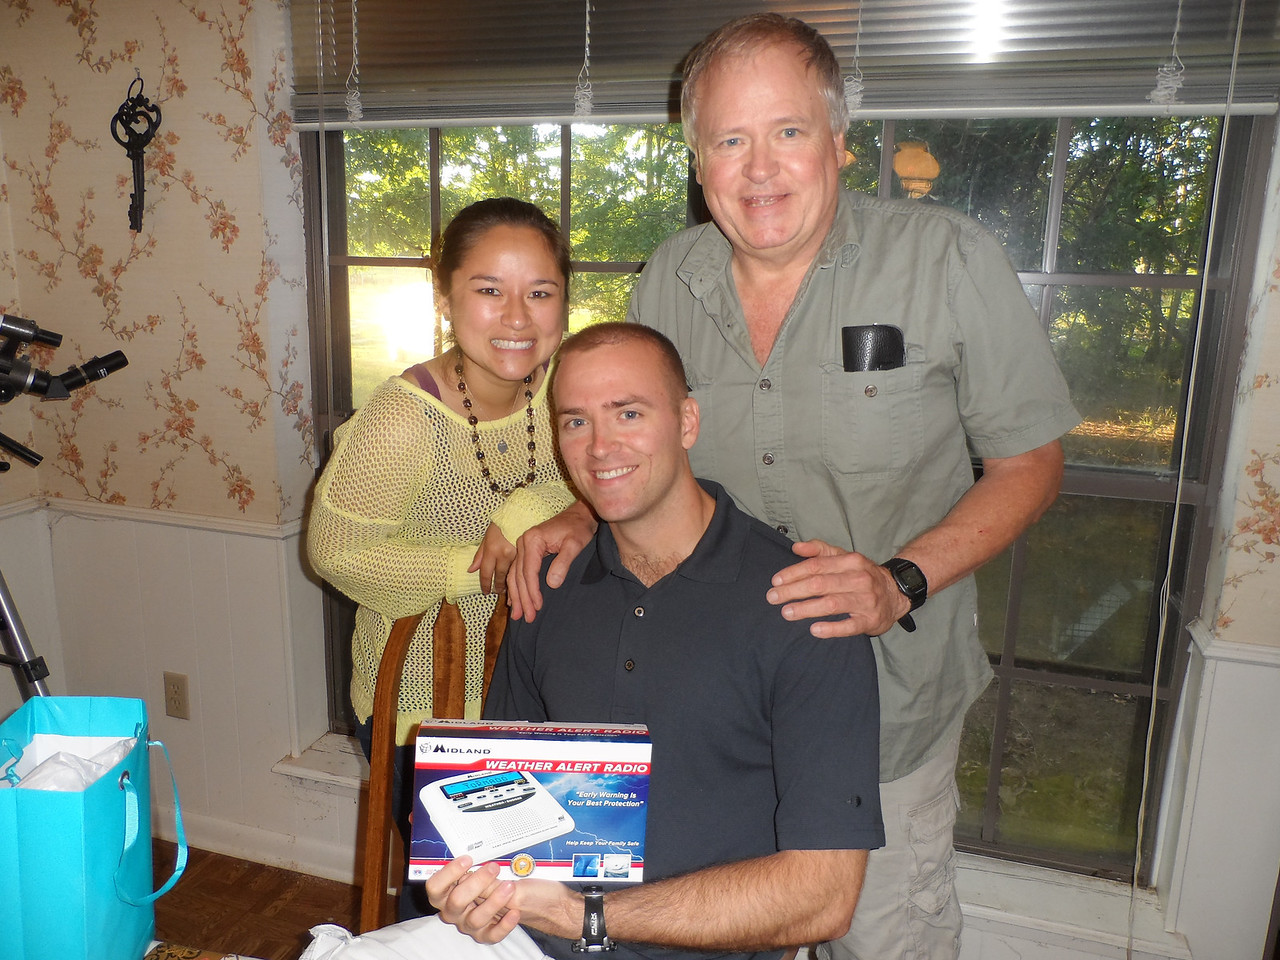 Luke, Tiffany and Dad.  Luke gets a weather alert radio from Dad.